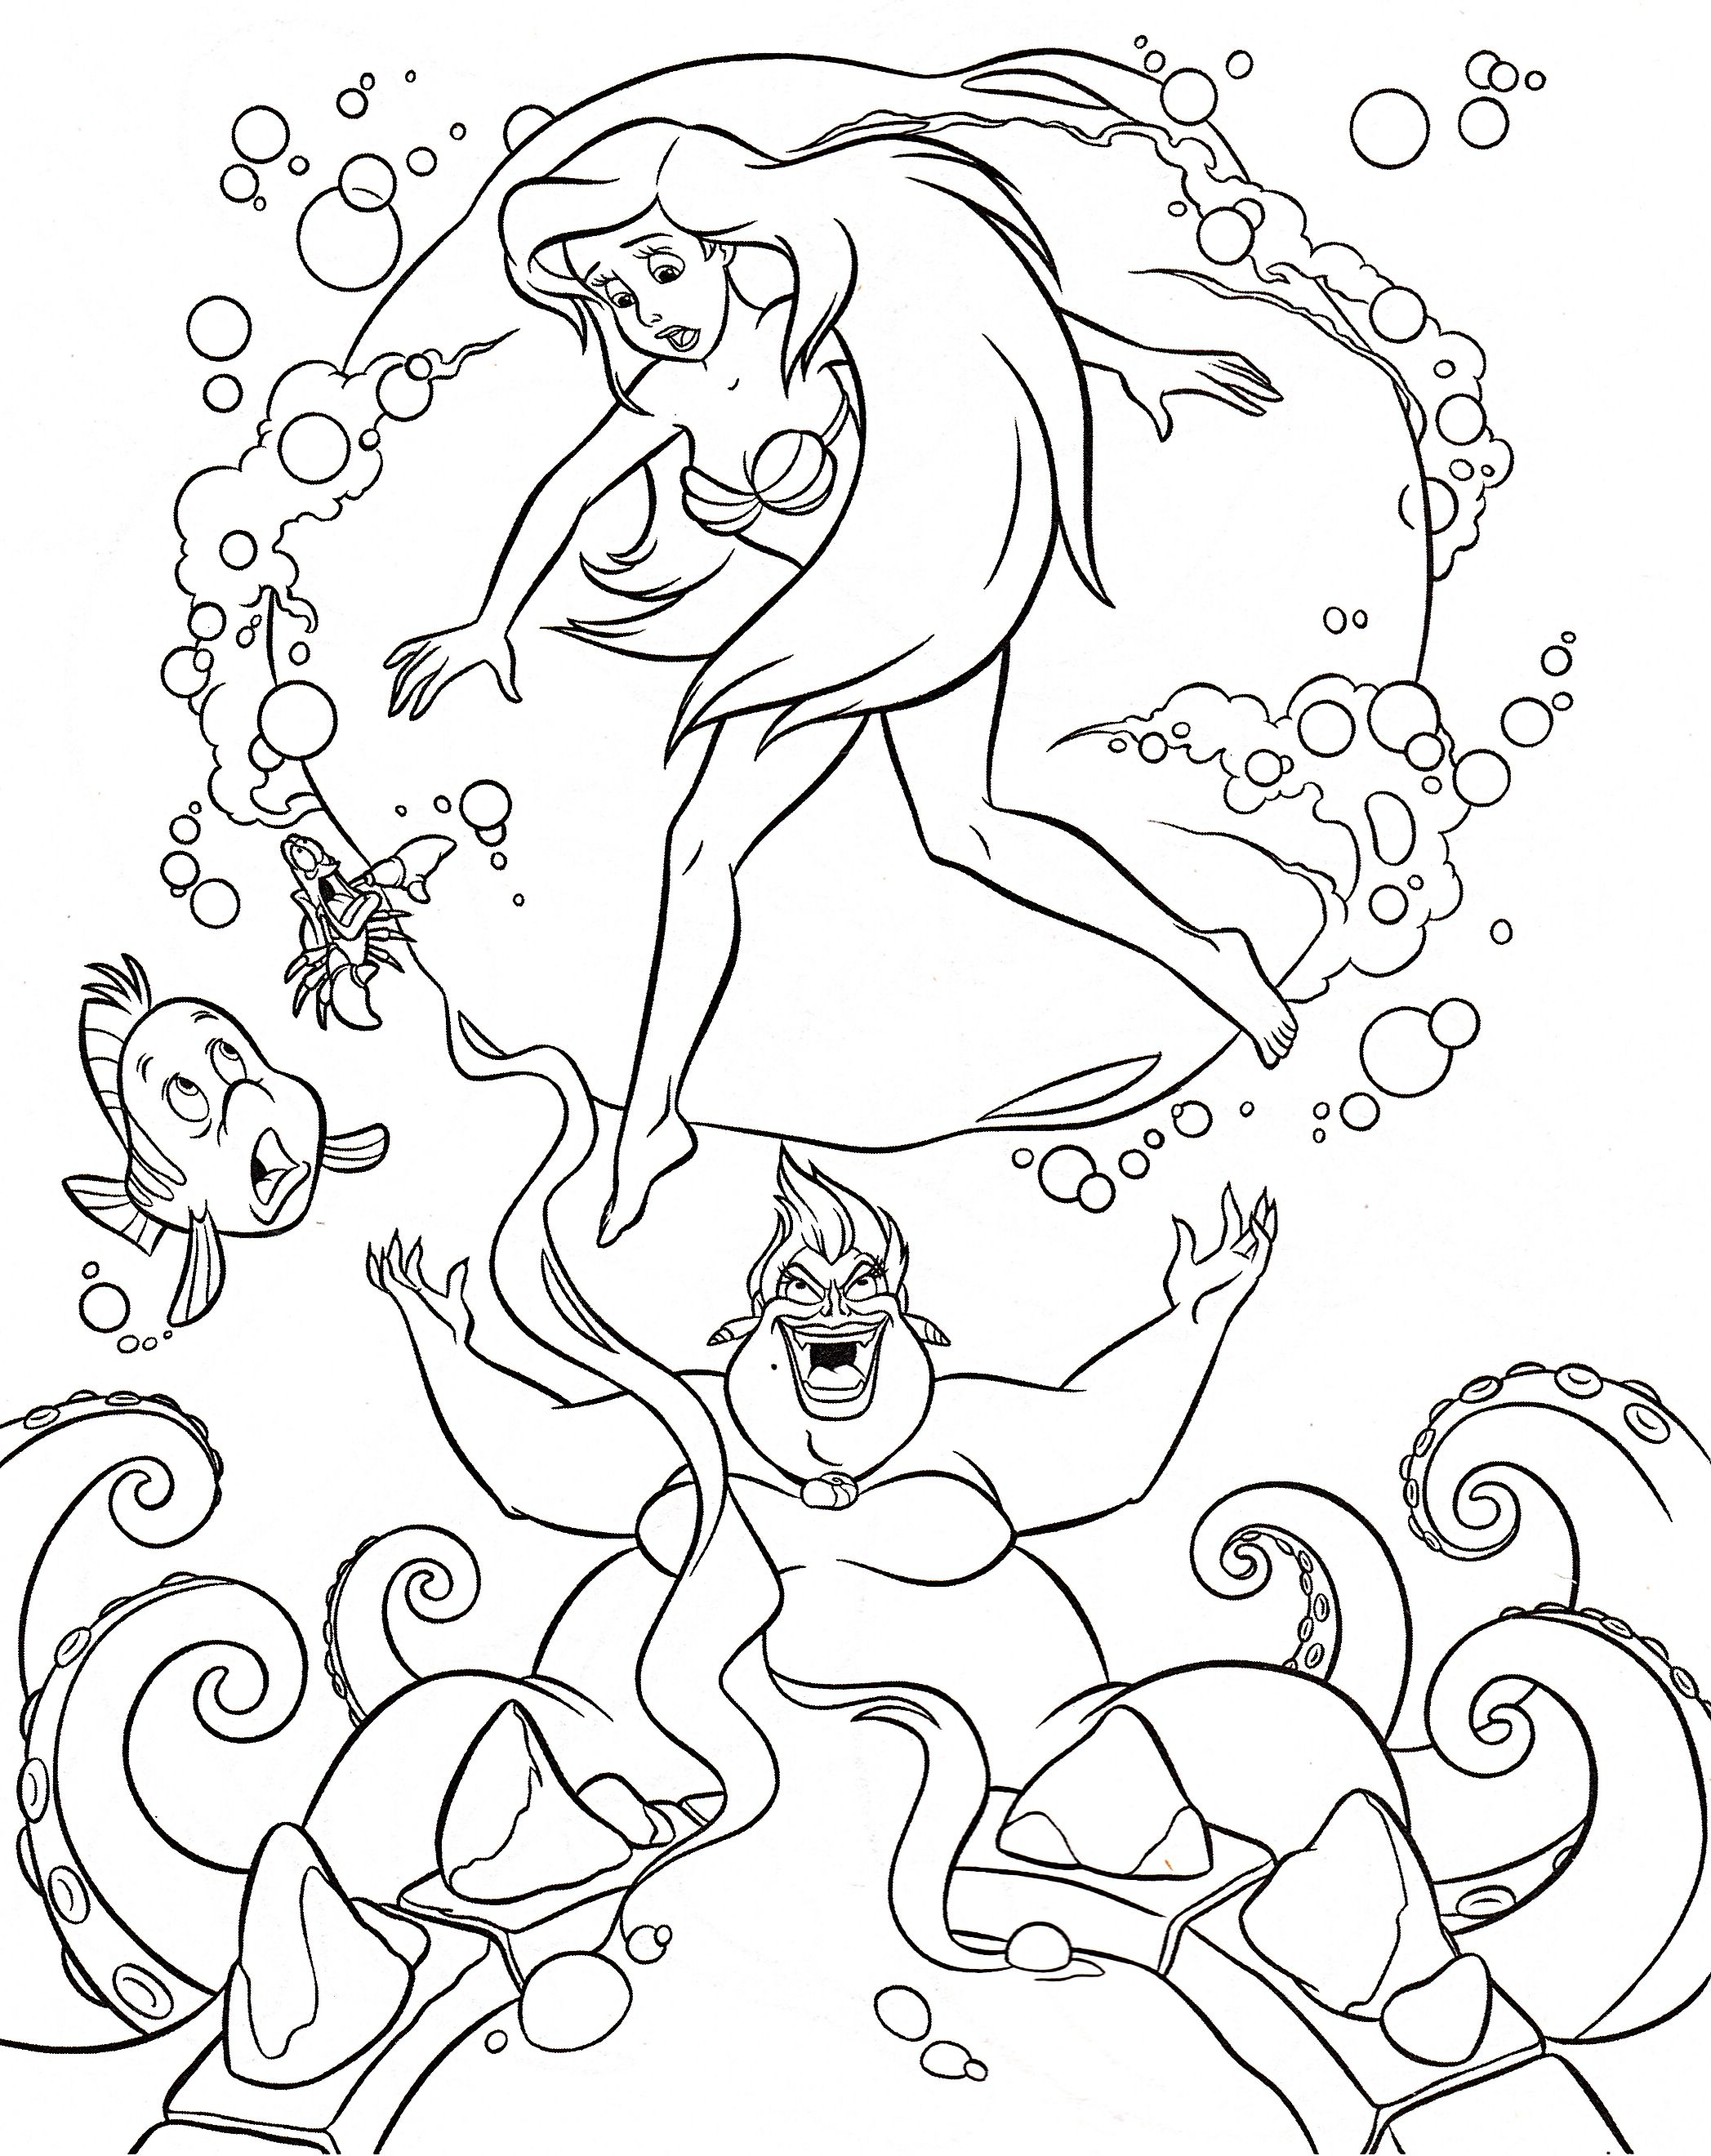 Coloring Pages Walt Disney : Walt disney coloring pages flounder sebastian princess